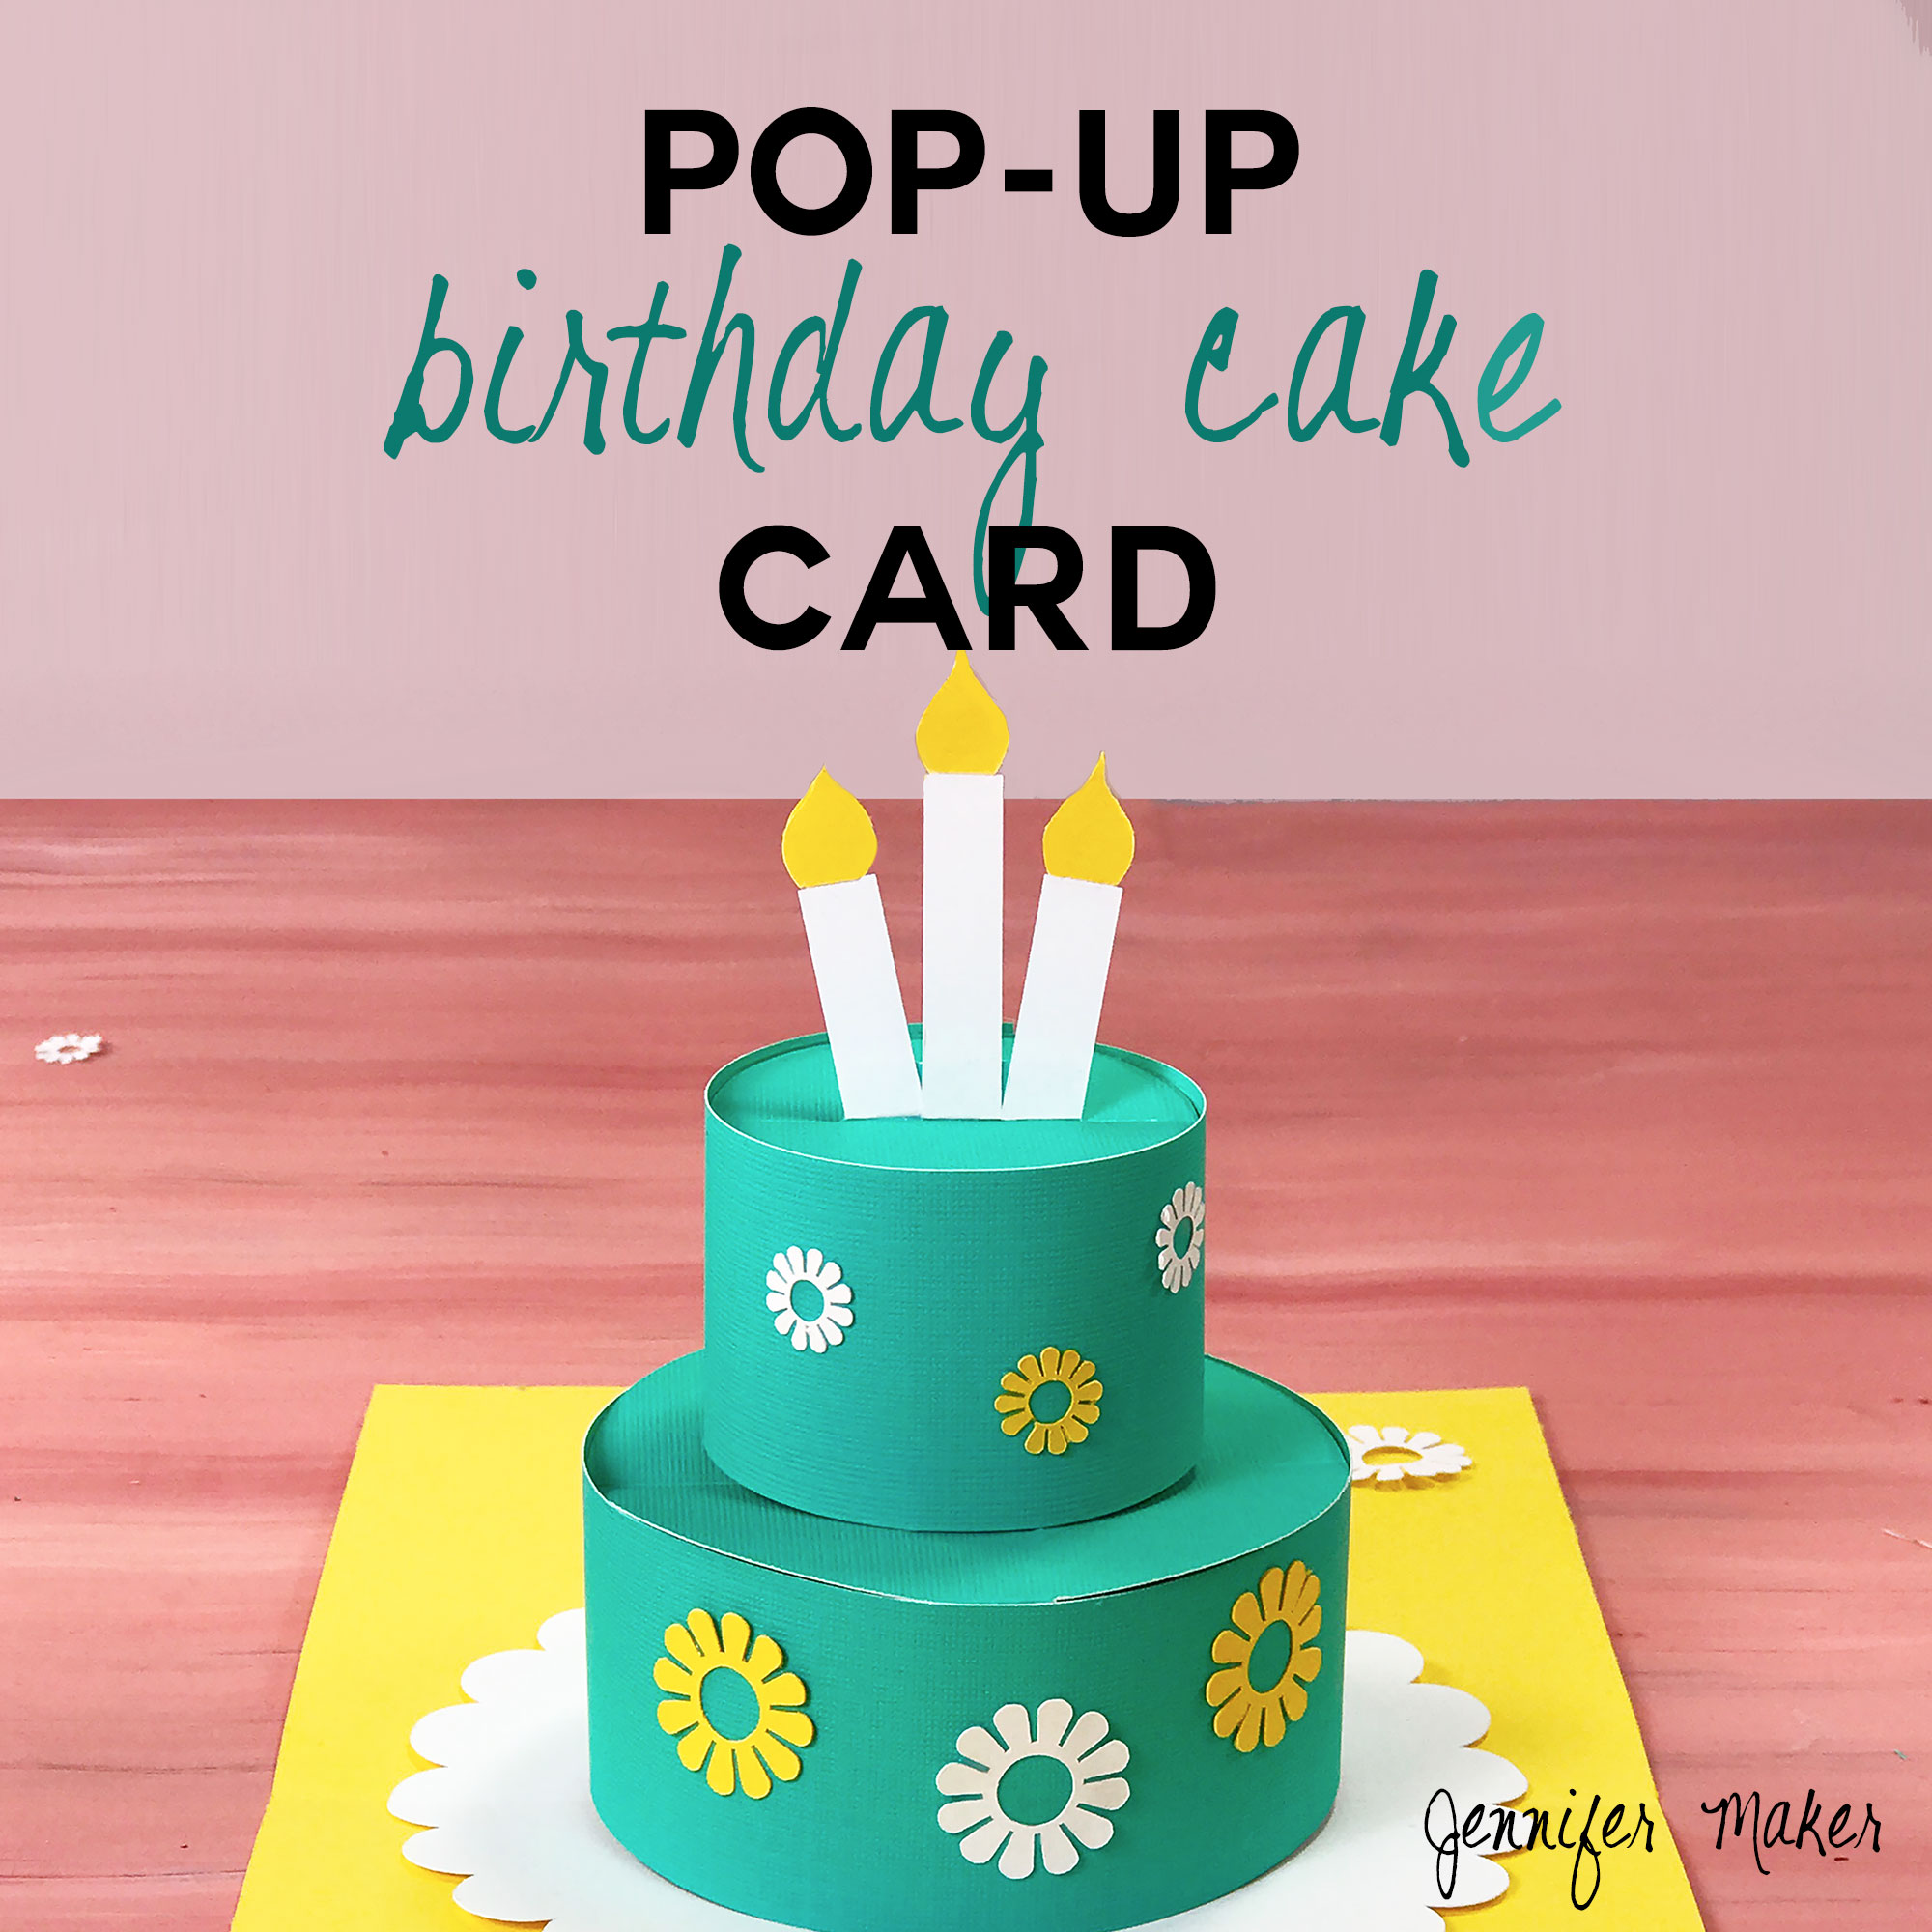 How to Make a PopUp Birthday Cake Card Jennifer Maker